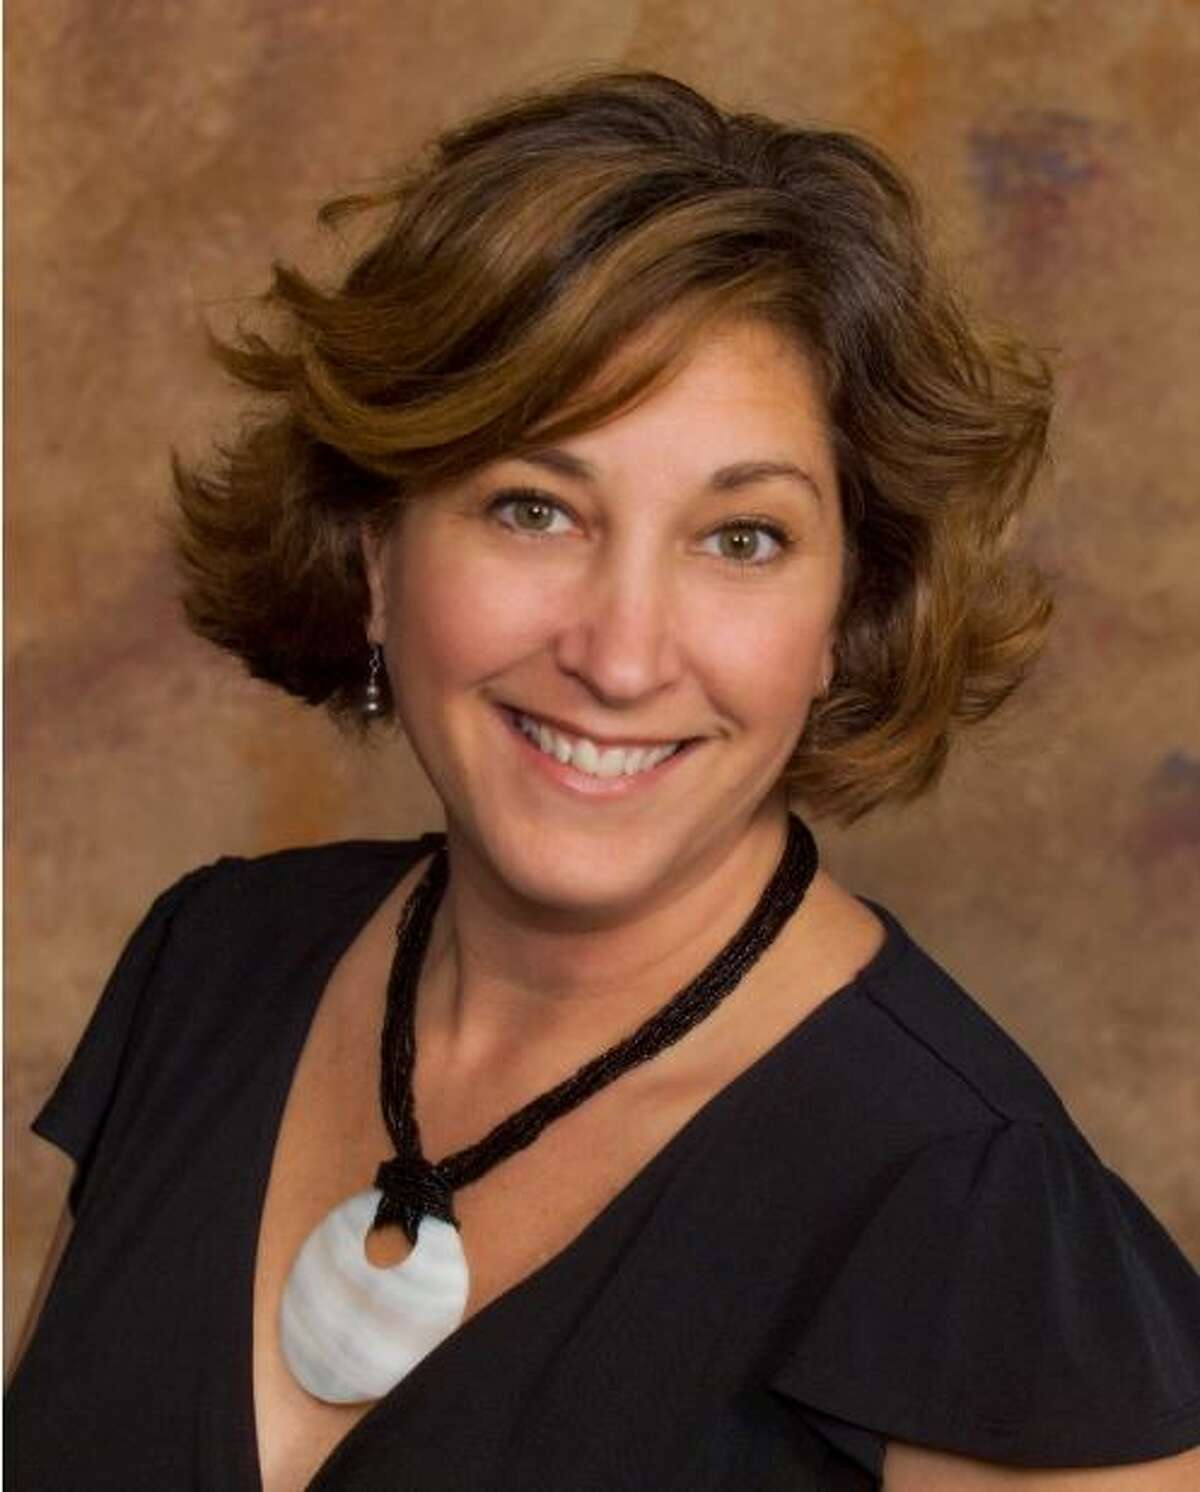 Clear Lake native Julie Harman Howell has been named director of member services and events at Lakewood Yacht Club.